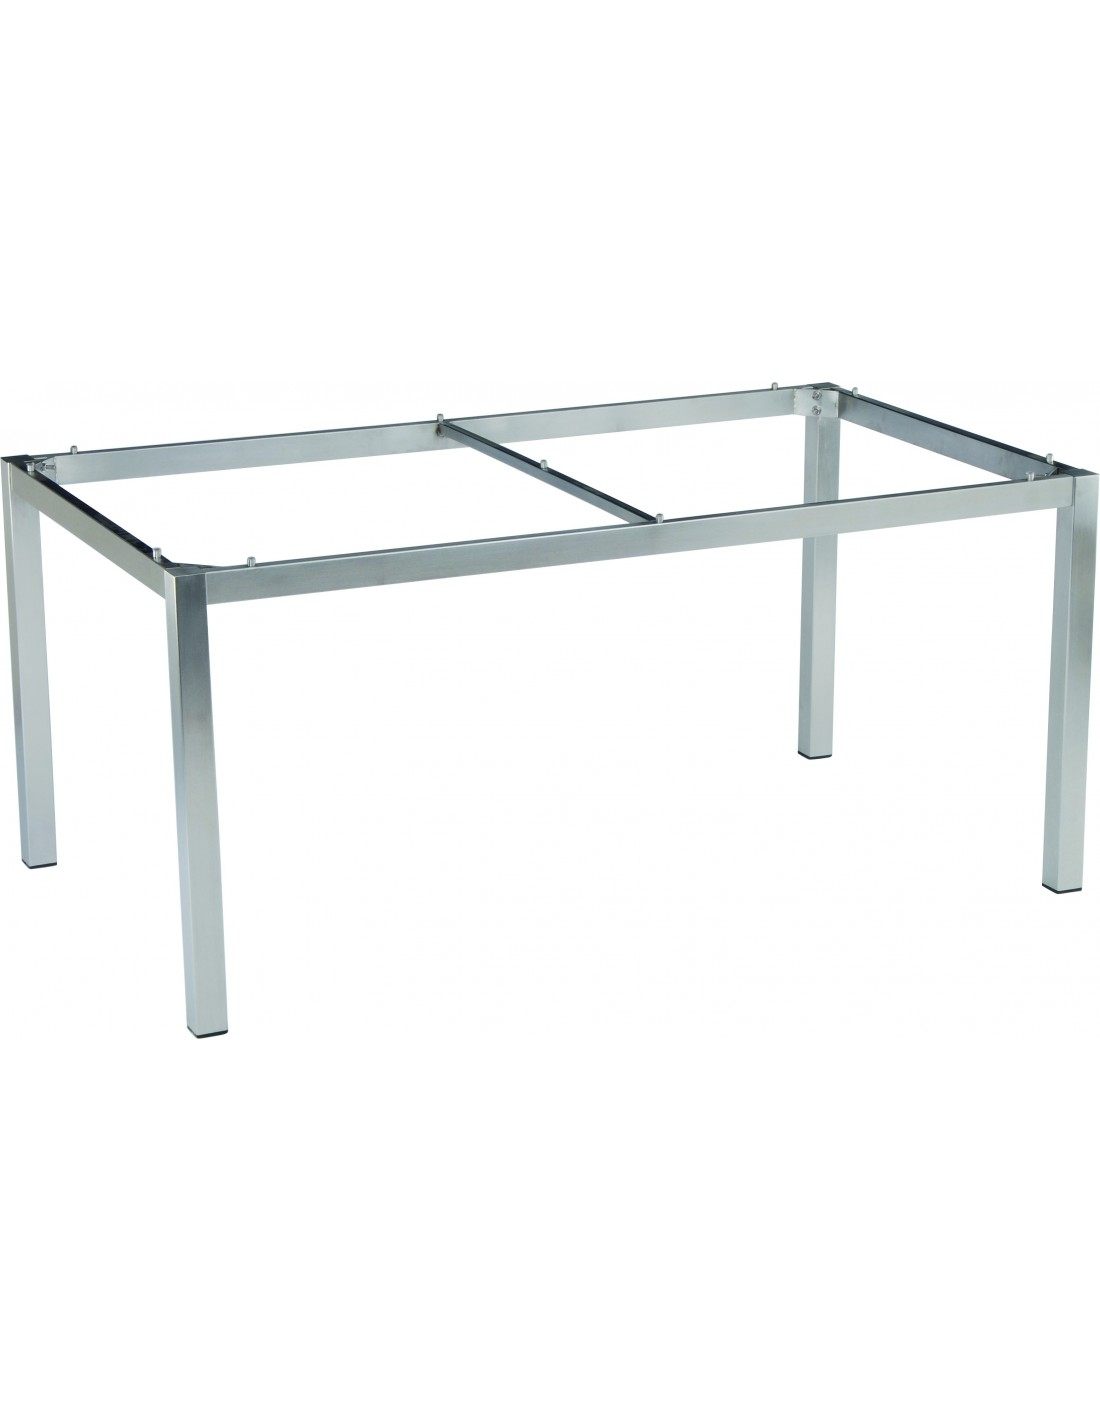 Table de jardin en inox stern dimensions 160x90x72cm for Table structure